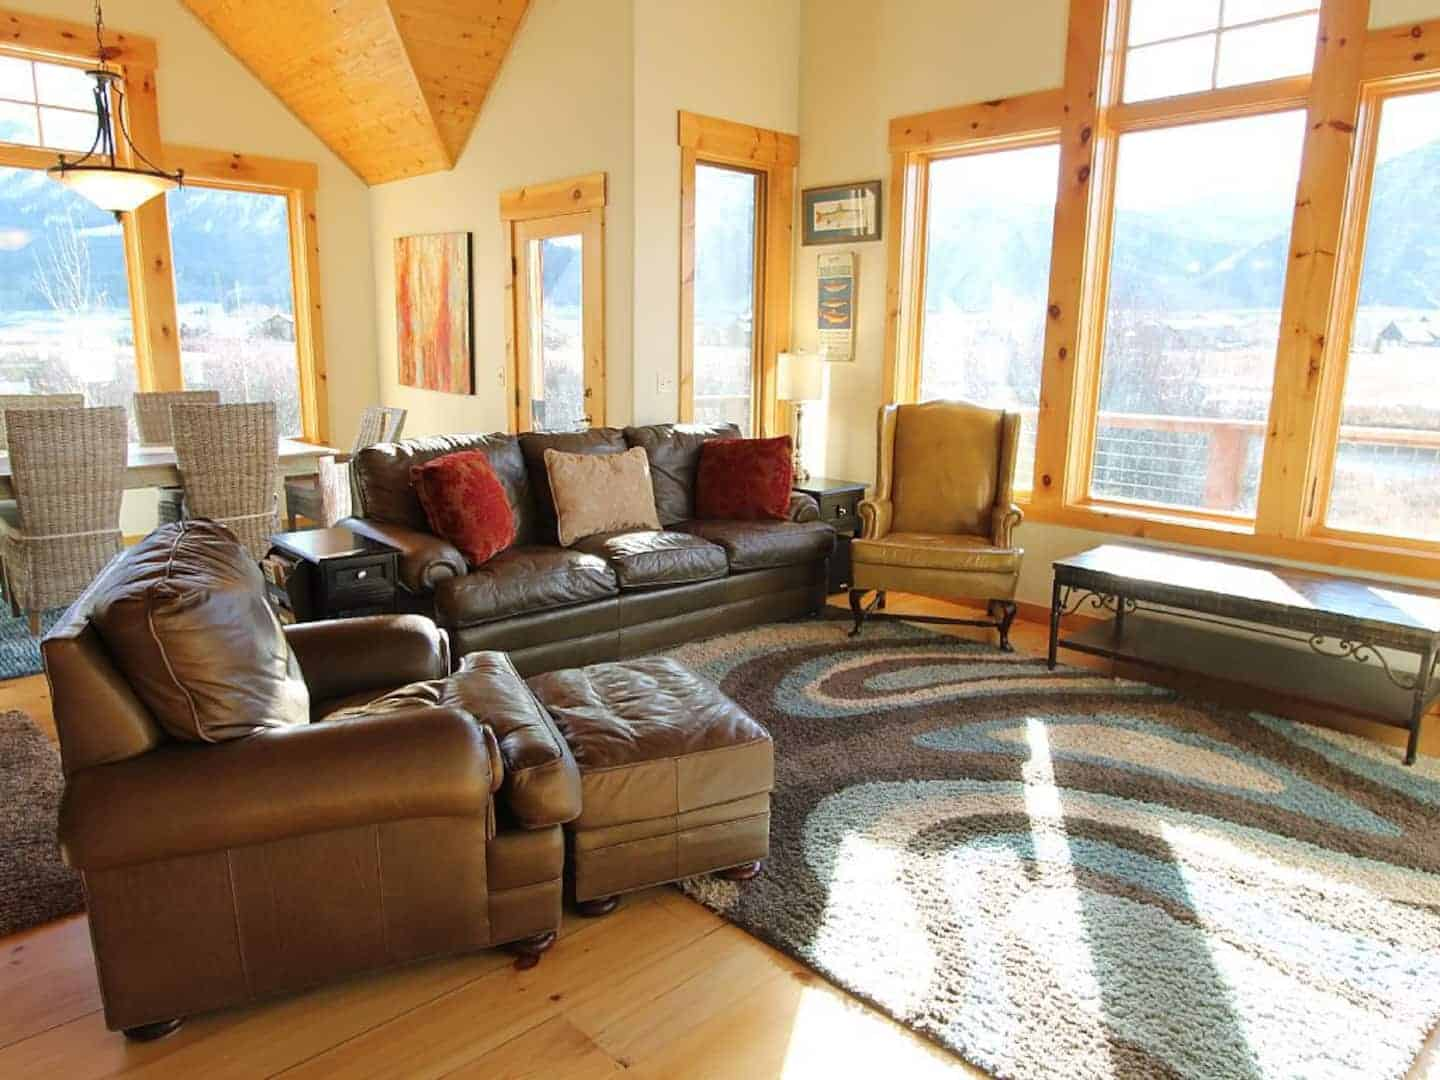 Image of Airbnb rental in Crested Butte, Colorado